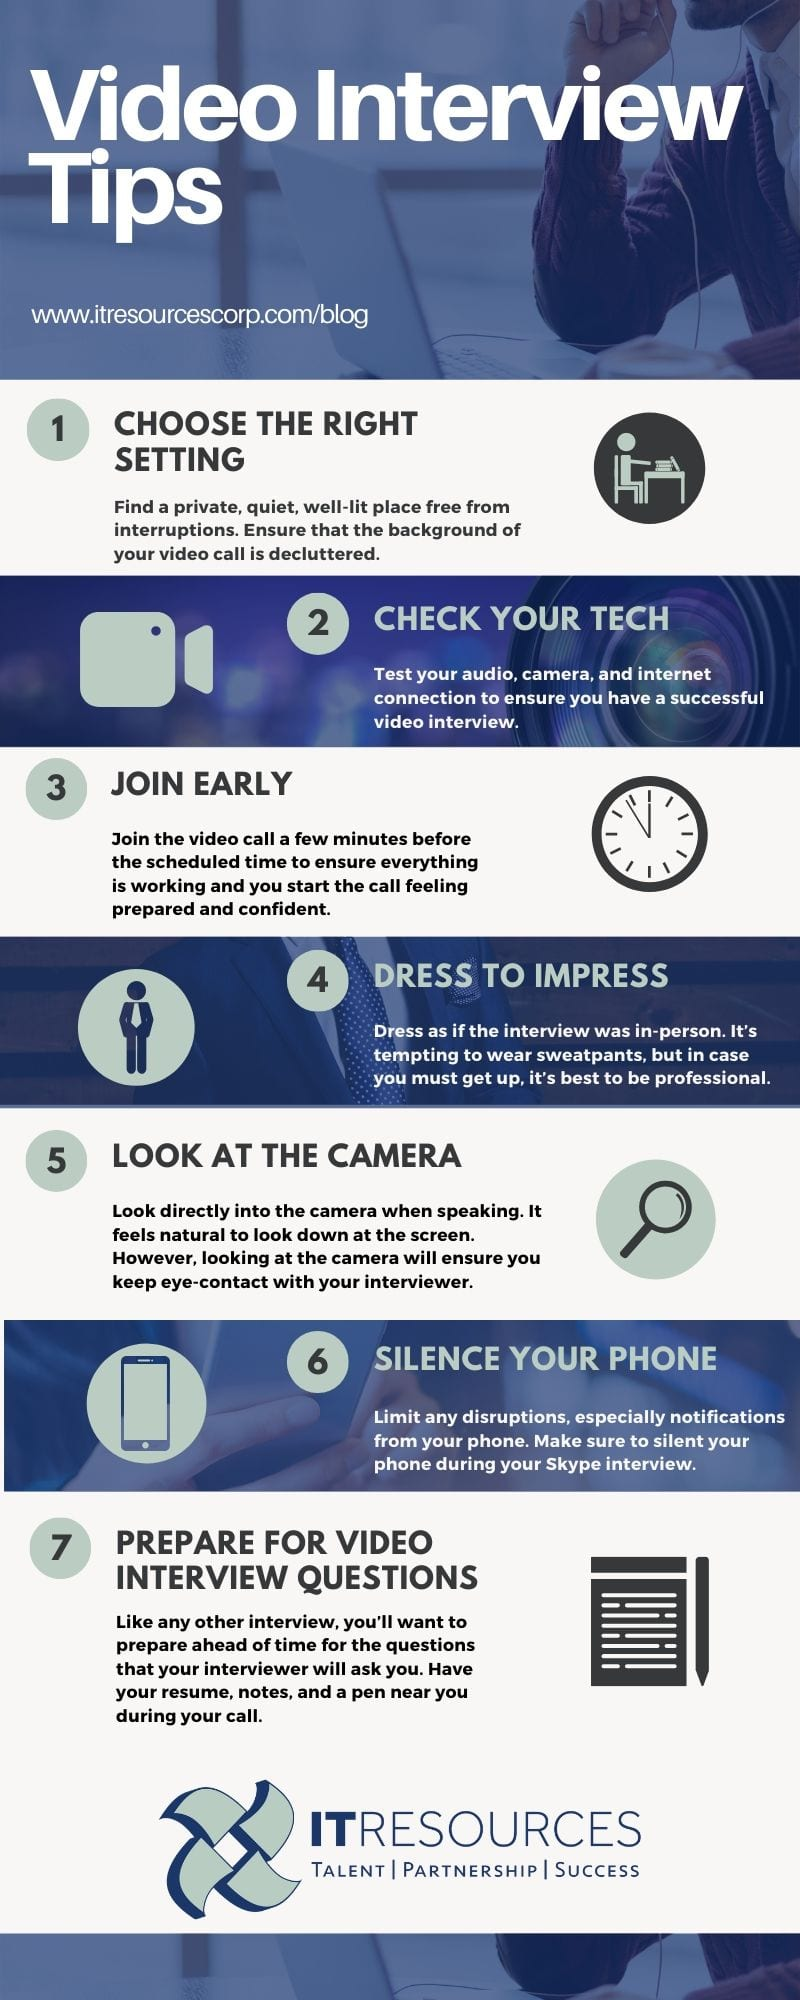 how to prepare for video interviews infographic with tips on what to do before a video interview